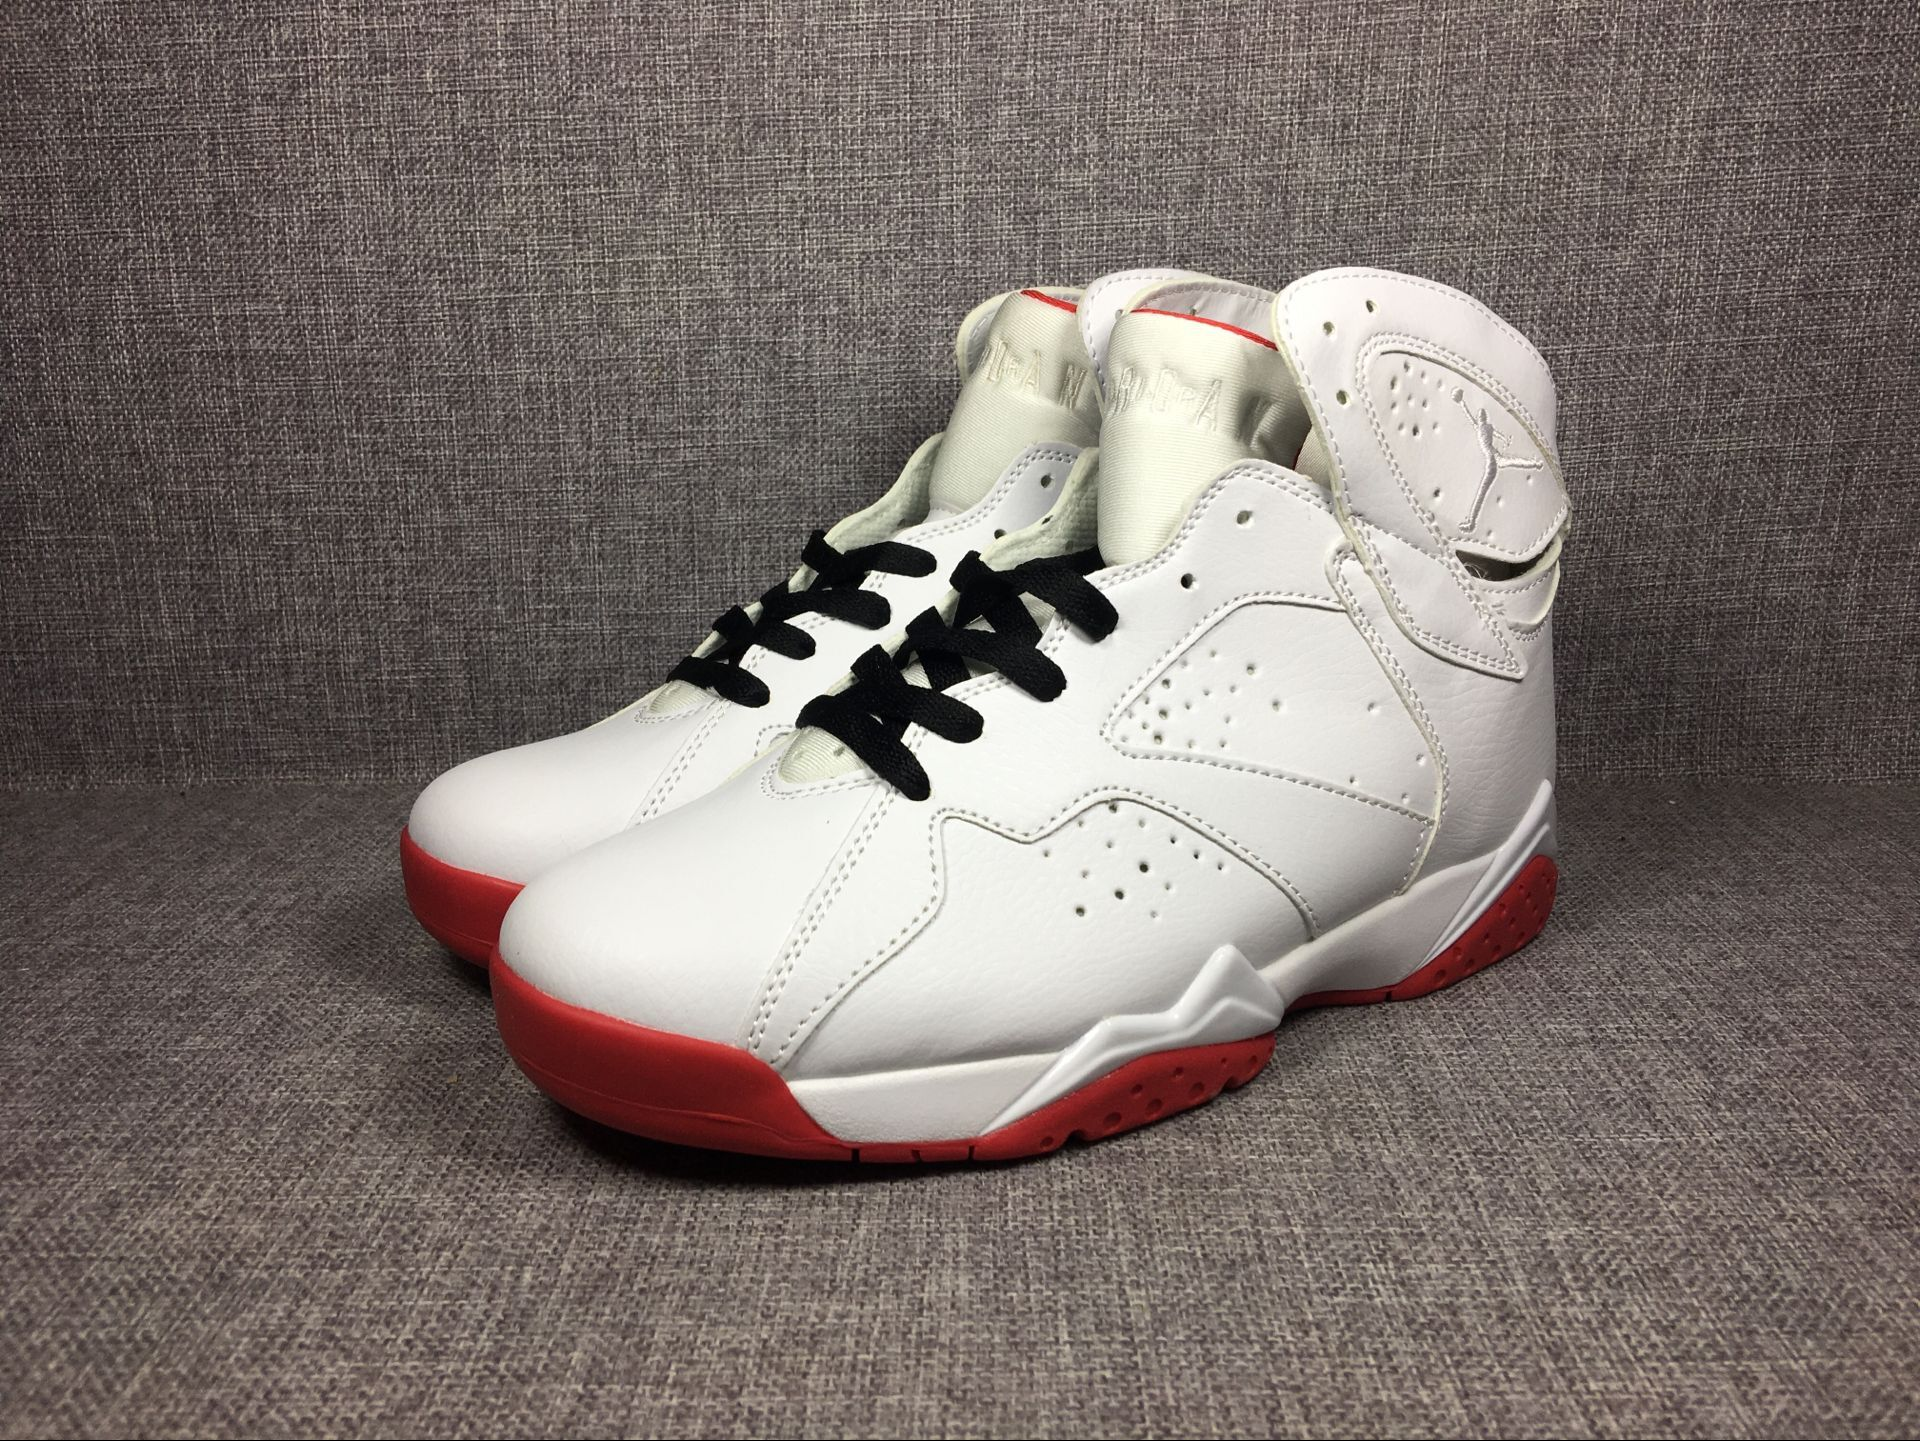 2017 Jordan 7 Retro White Red Shoes